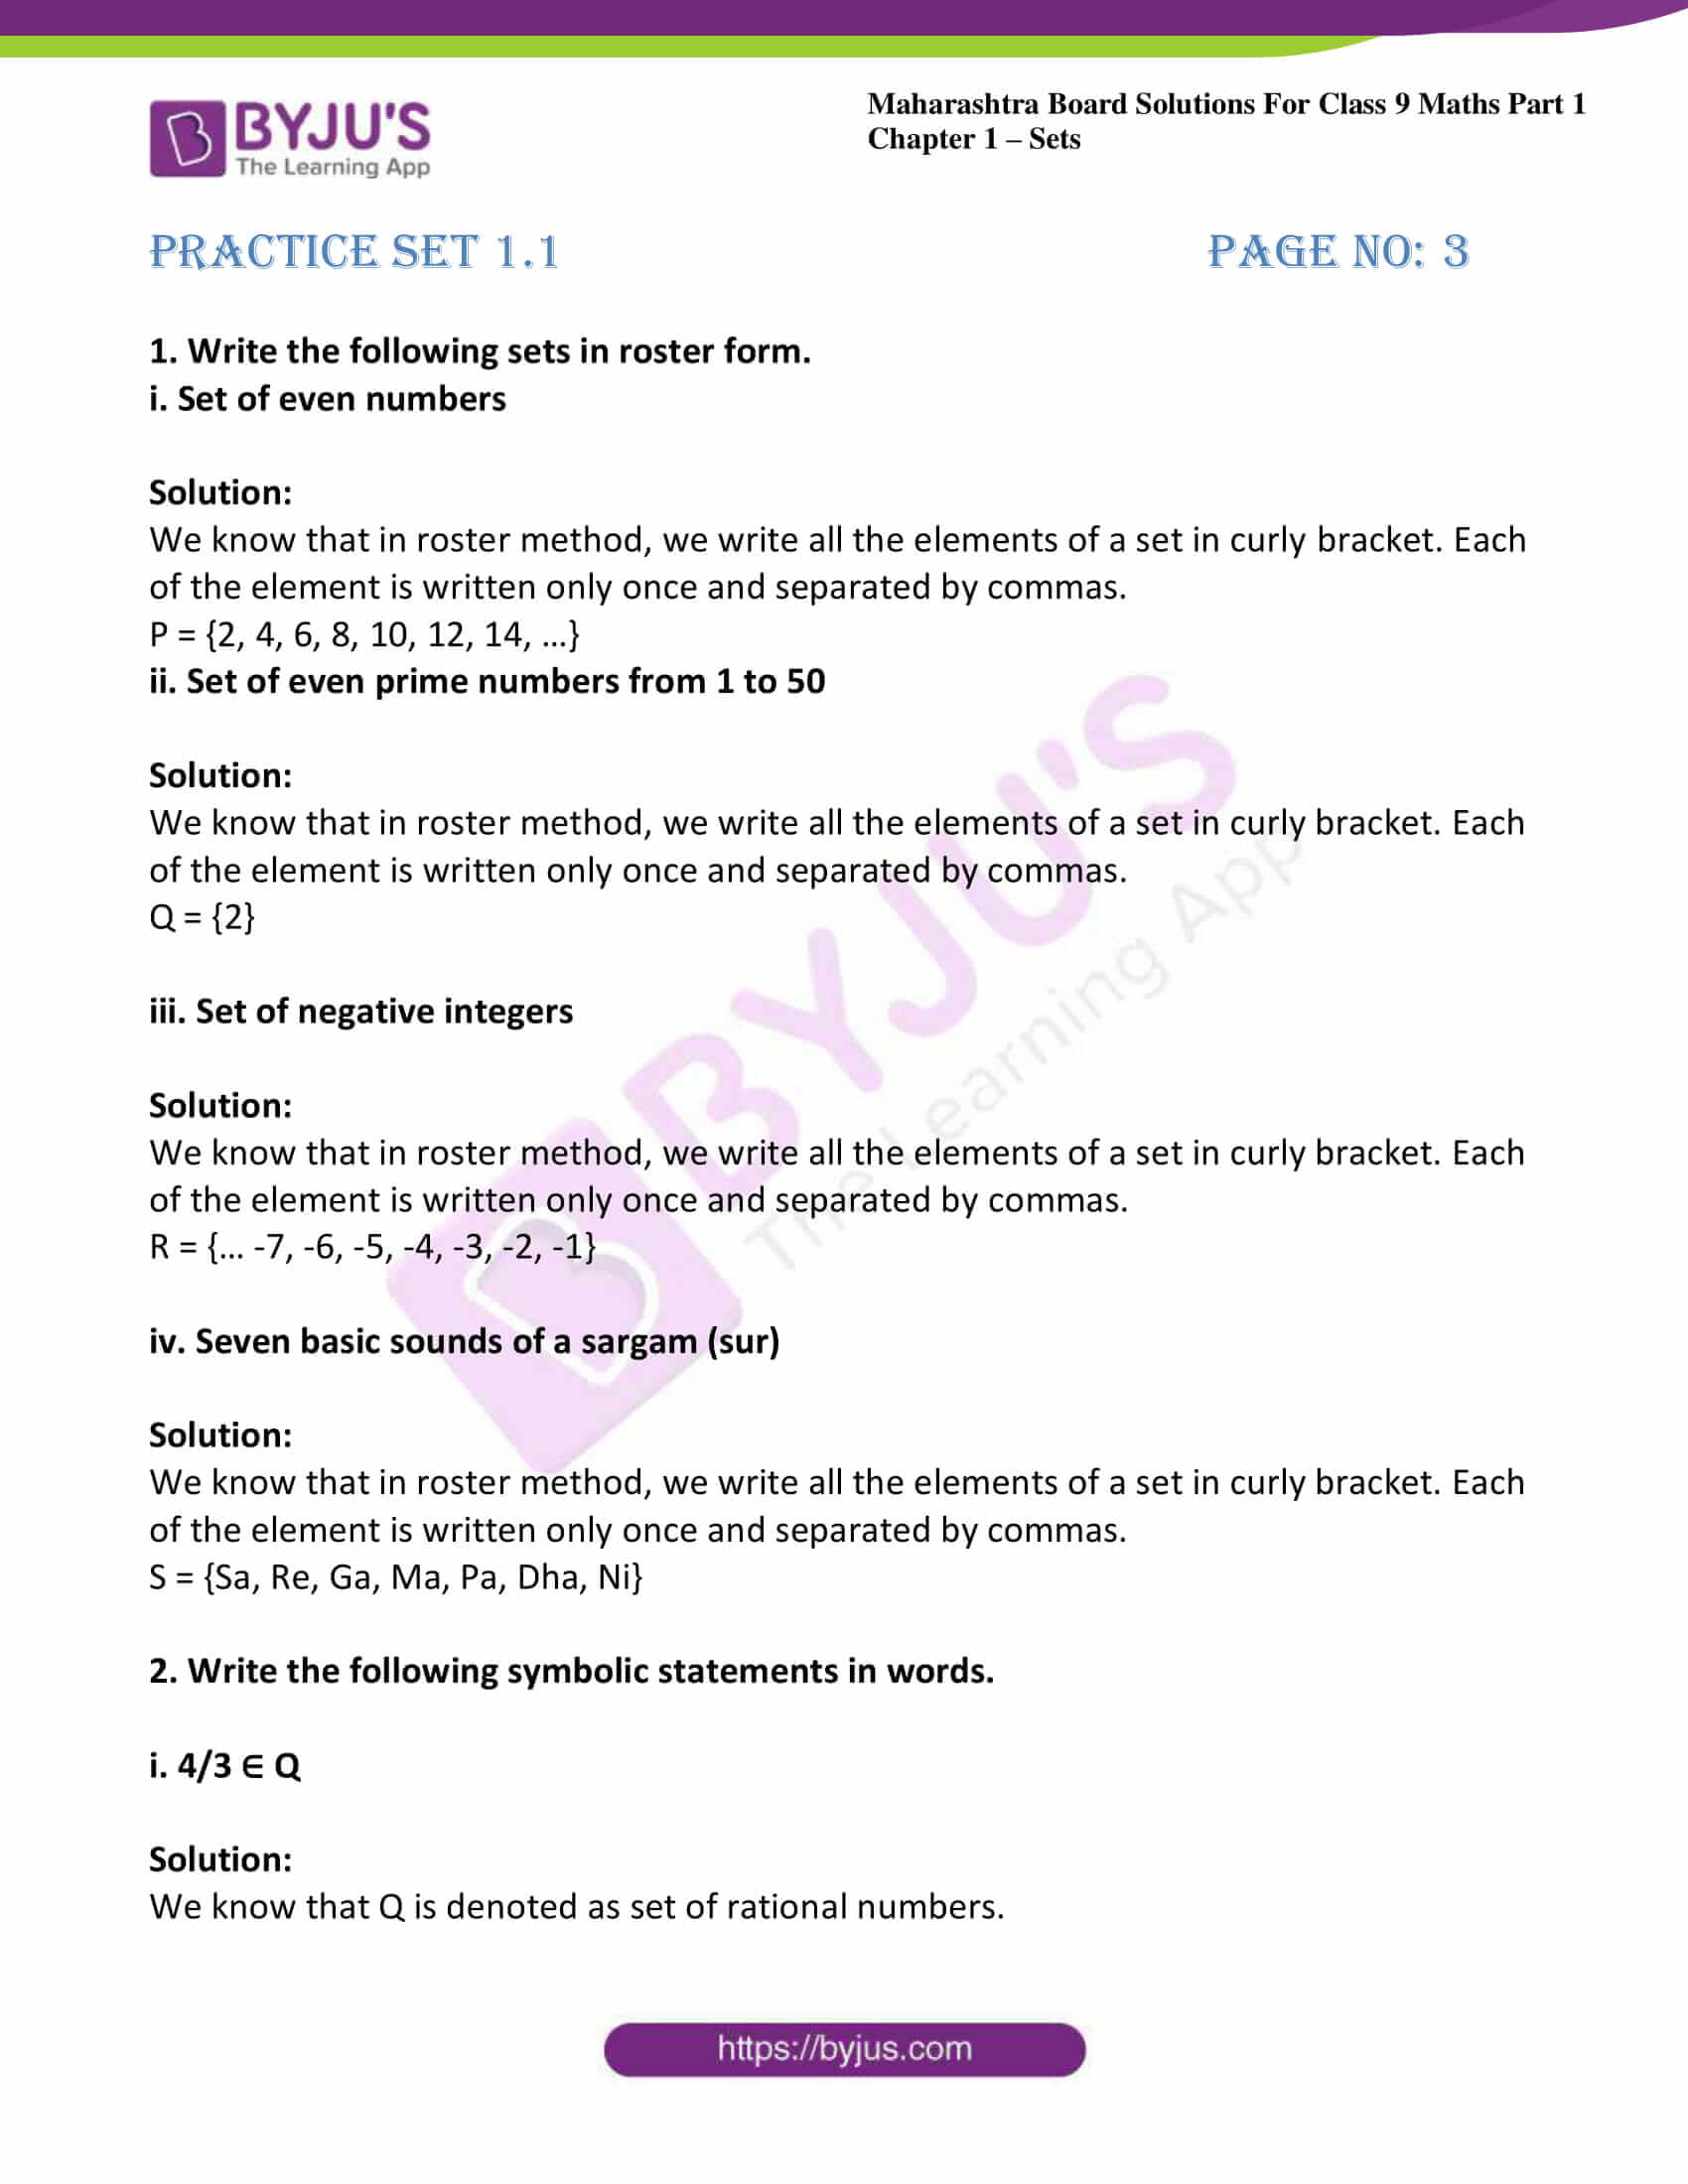 msbshse sol class 9 maths part 1 chapter 1 sets 01